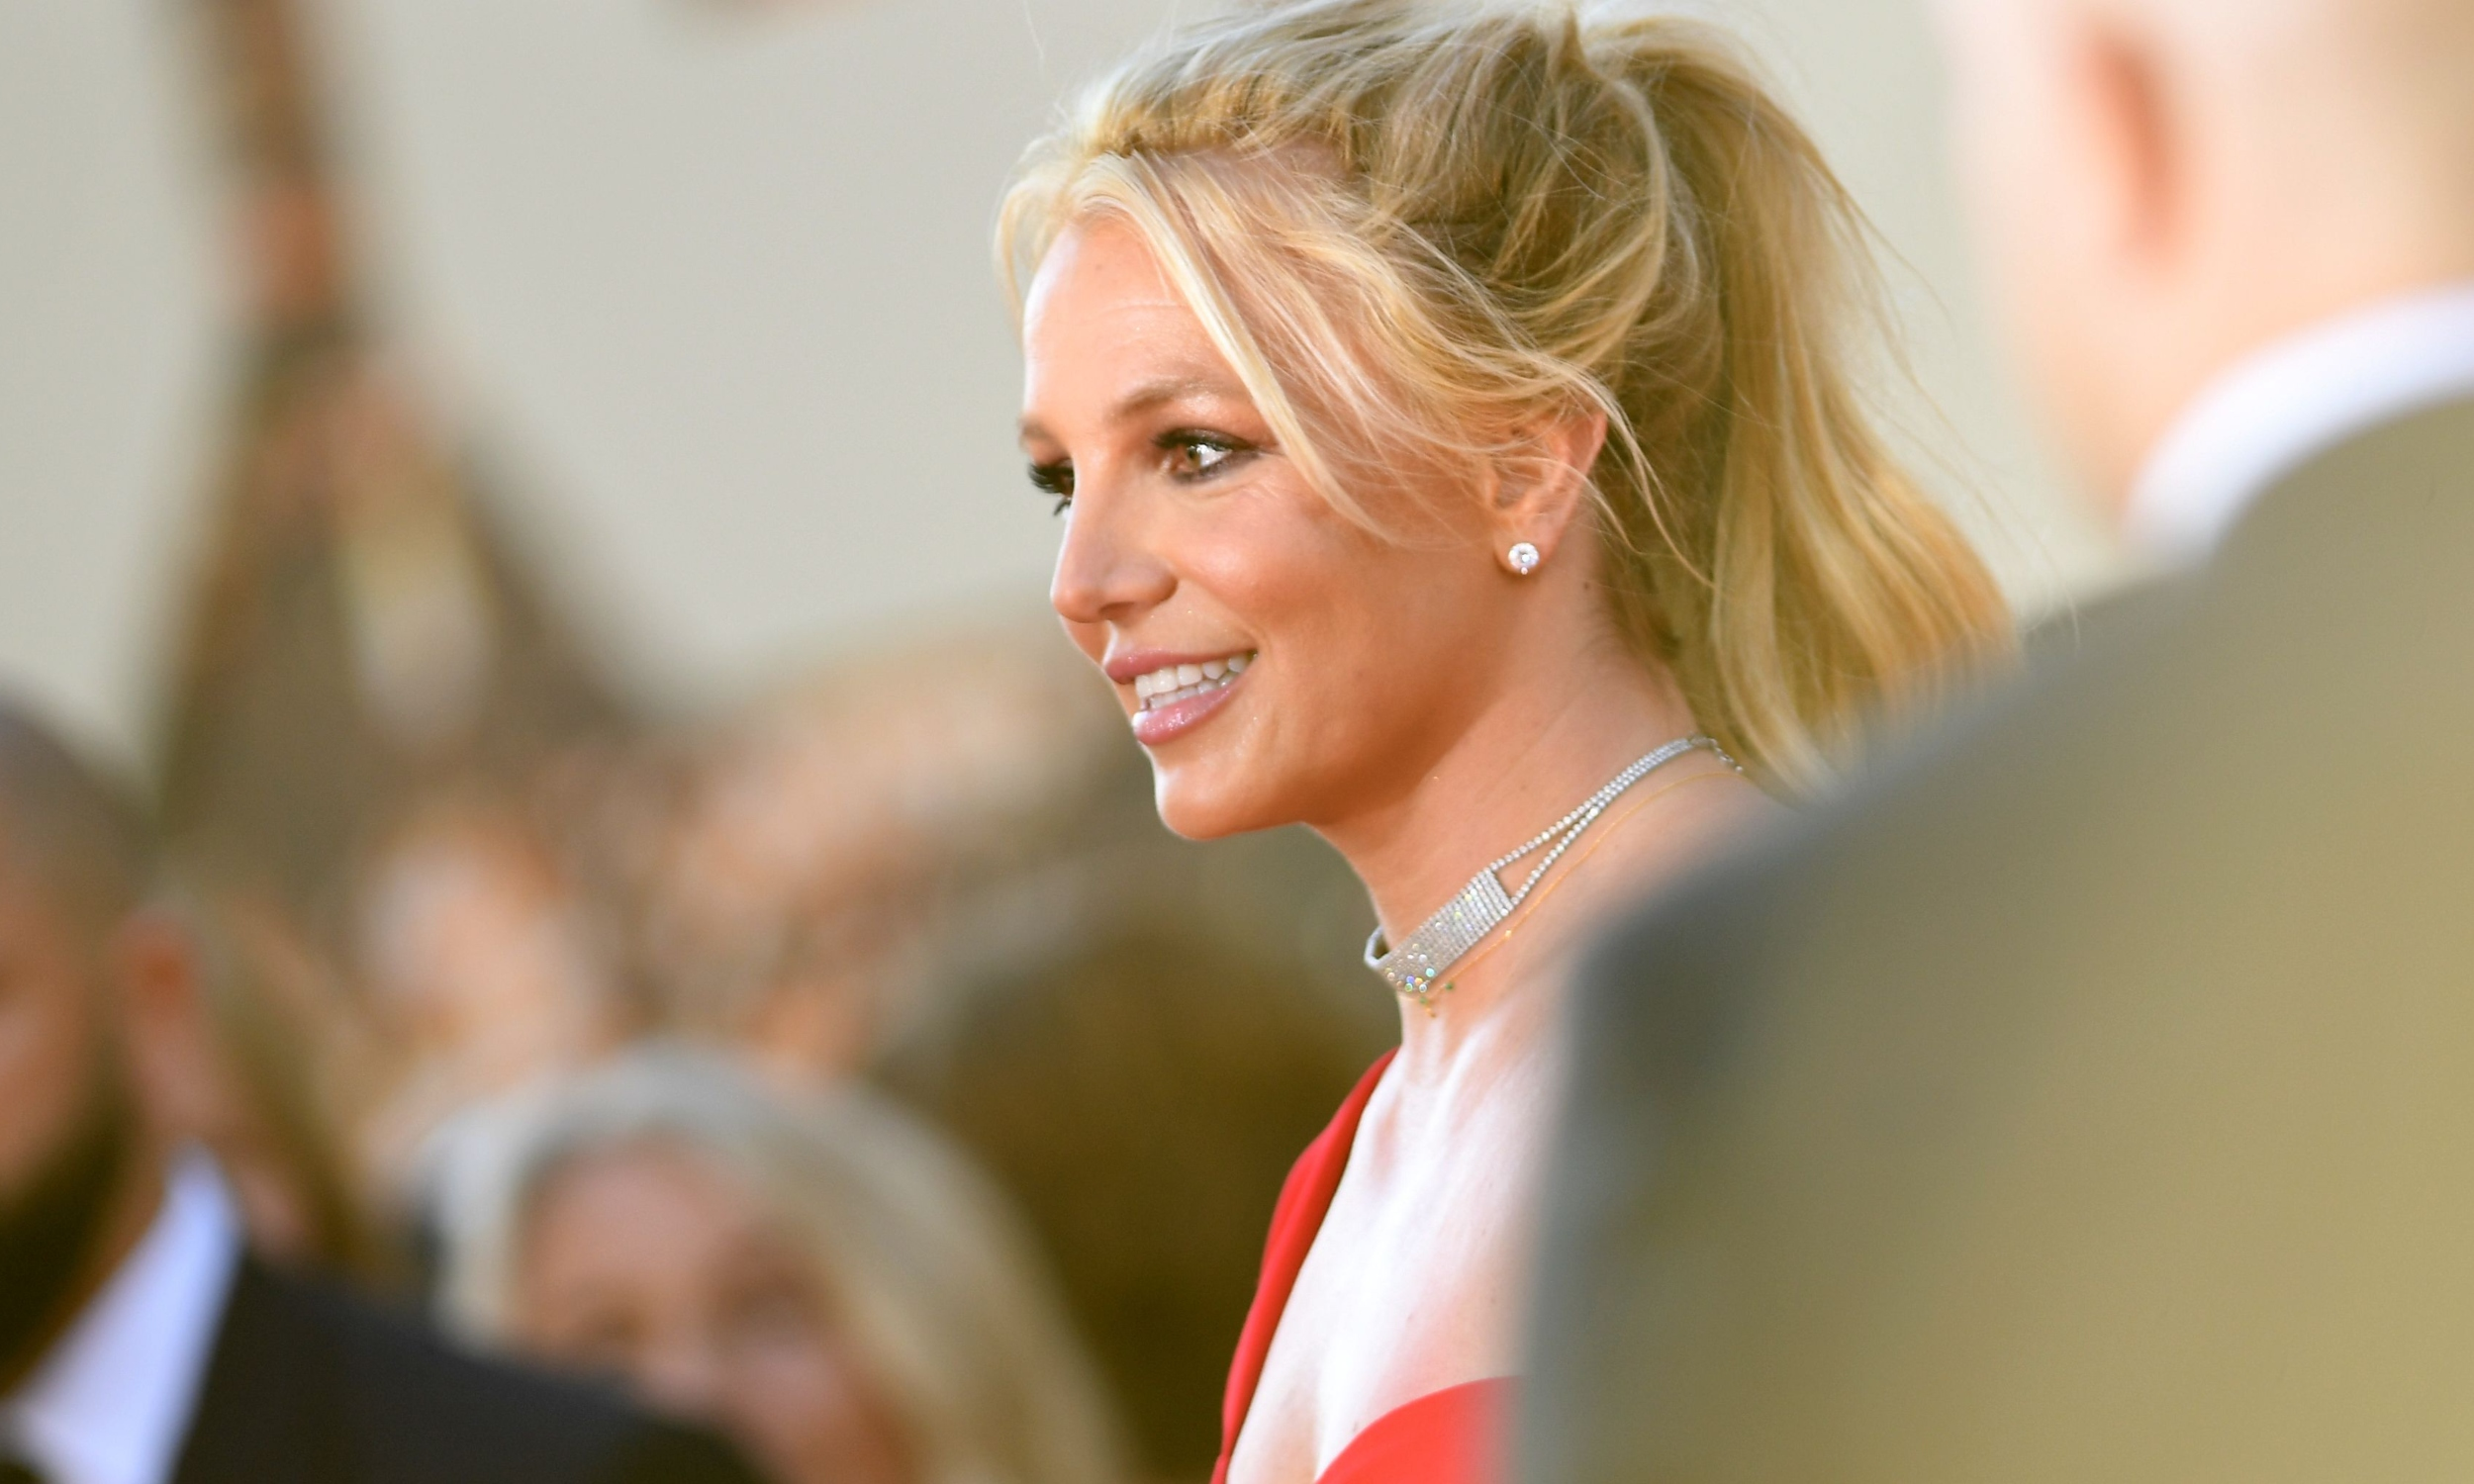 Britney Spears wears a red dress. Her hair is blond and in a high ponytail.